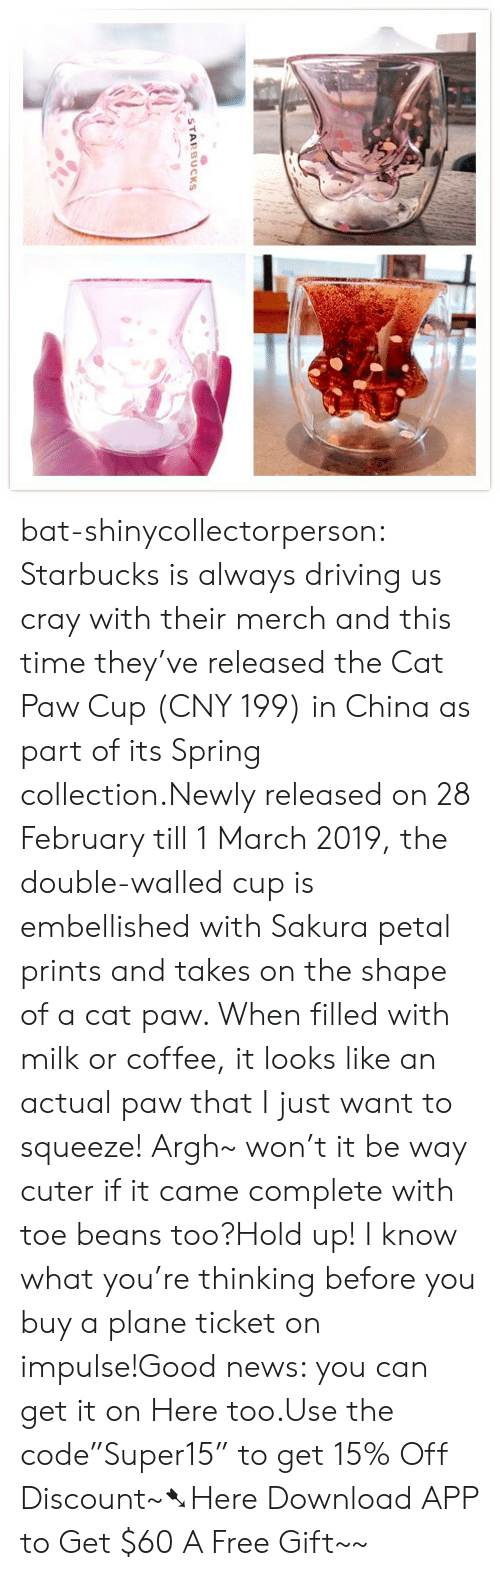 """merch: STARBUCKS bat-shinycollectorperson:  Starbucks is always driving us cray with their merch and this time they've released the Cat Paw Cup (CNY 199) in China as part of its Spring collection.Newly released on 28 February till 1 March 2019, the double-walled cup is embellished with Sakura petal prints and takes on the shape of a cat paw. When filled with milk or coffee, it looks like an actual paw that I just want to squeeze! Argh~ won't it be way cuter if it came complete with toe beans too?Hold up! I know what you're thinking before you buy a plane ticket on impulse!Good news: you can get it on Here too.Use the code""""Super15"""" to get 15% Off Discount~➷Here Download APP to Get $60  A Free Gift~~"""